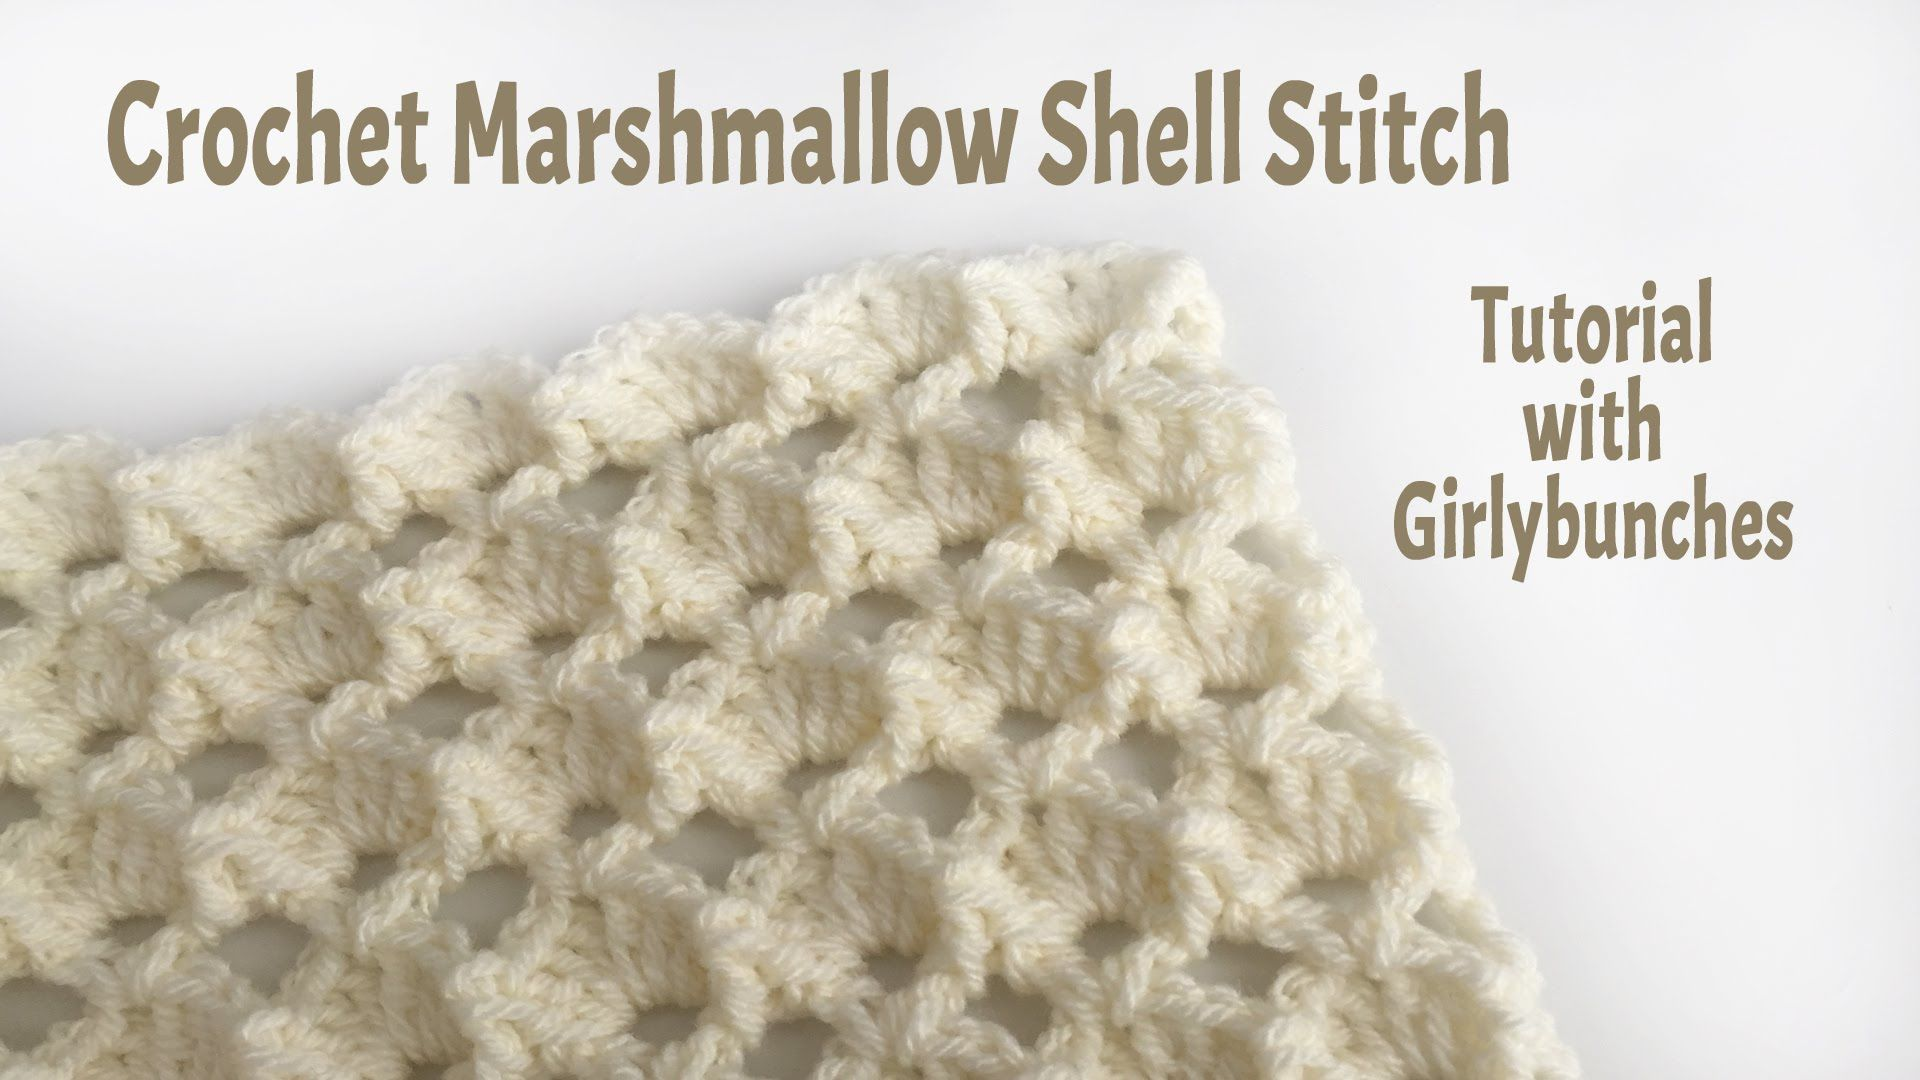 Learn to Crochet with Girlybunches - Crochet Marshmallow Shell ...